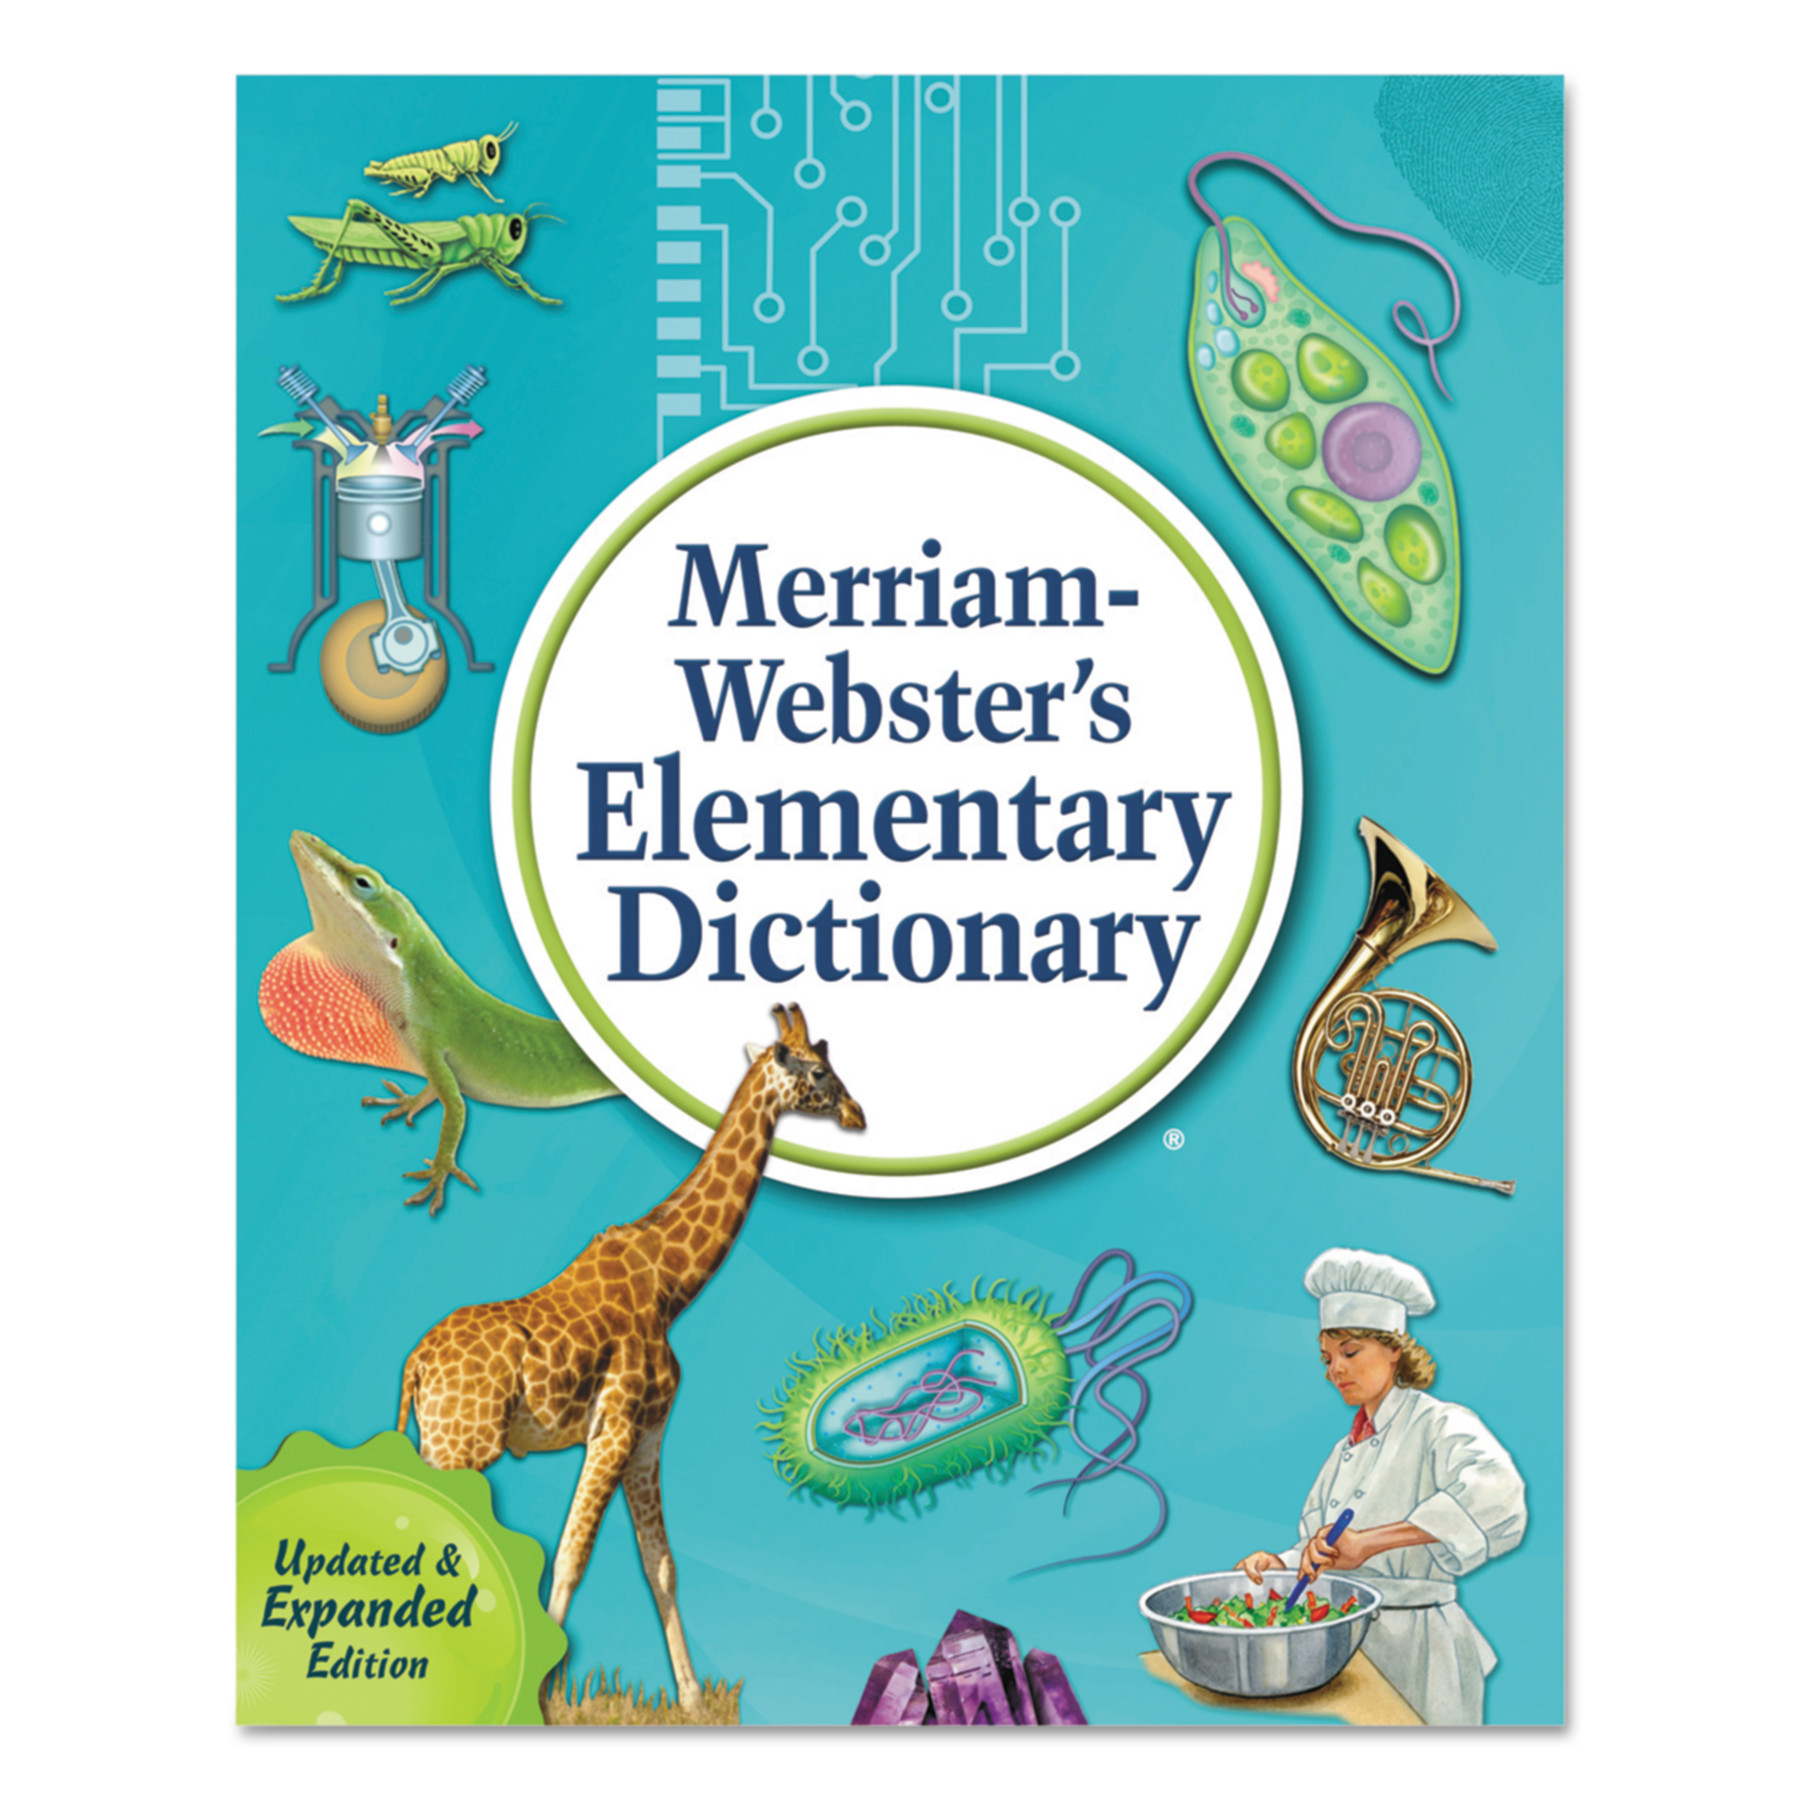 Merriam Webster Elementary Dictionary, Grades 3-5, Hardcover, 624 Pages  -MER6763 - Walmart.com